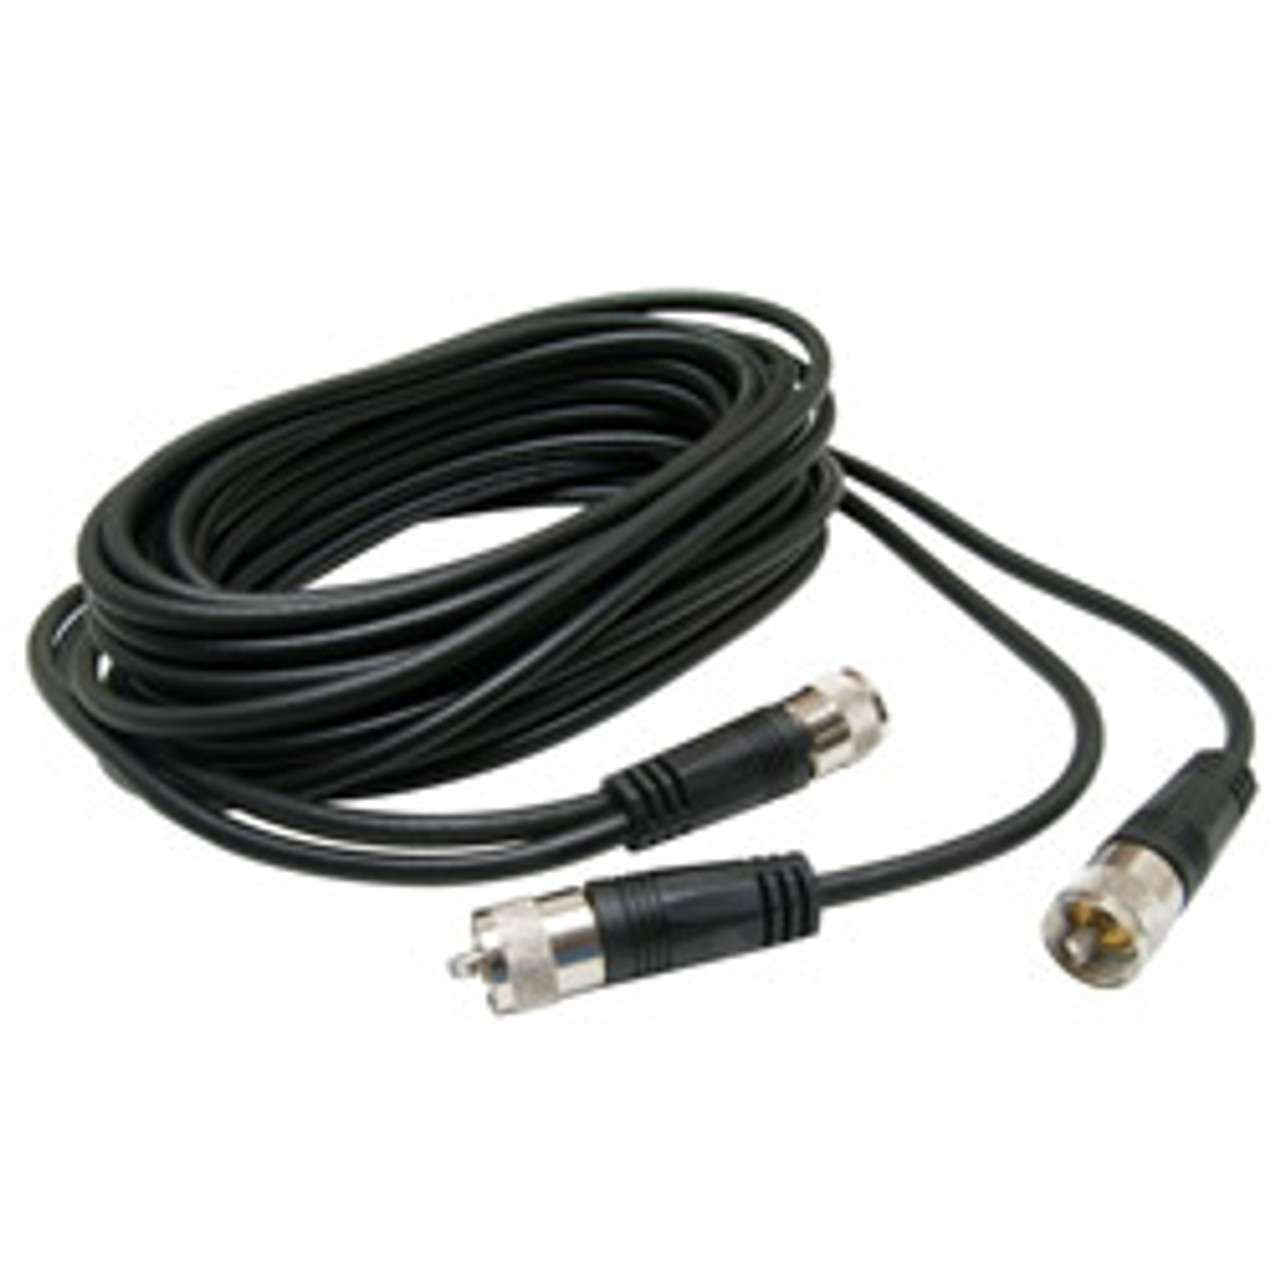 RoadPro(R) - 18' CB Antenna Co-Phase Coax Cable with (3) PL-259 Connectors, Black